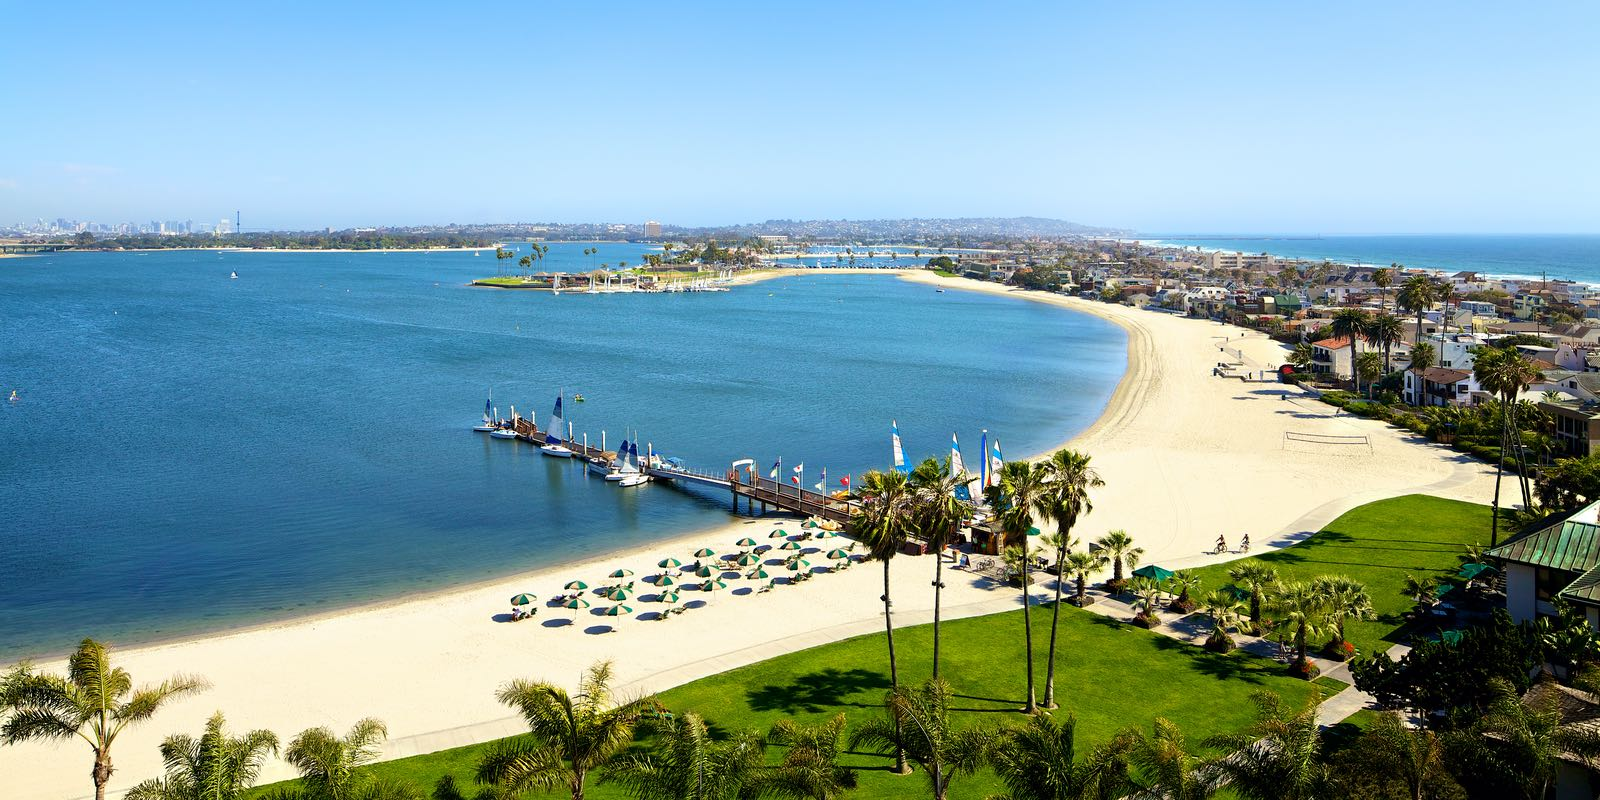 Mission Bay from Catamarn Resort and Spa - Live Web Cams Sending San Diego Warmth